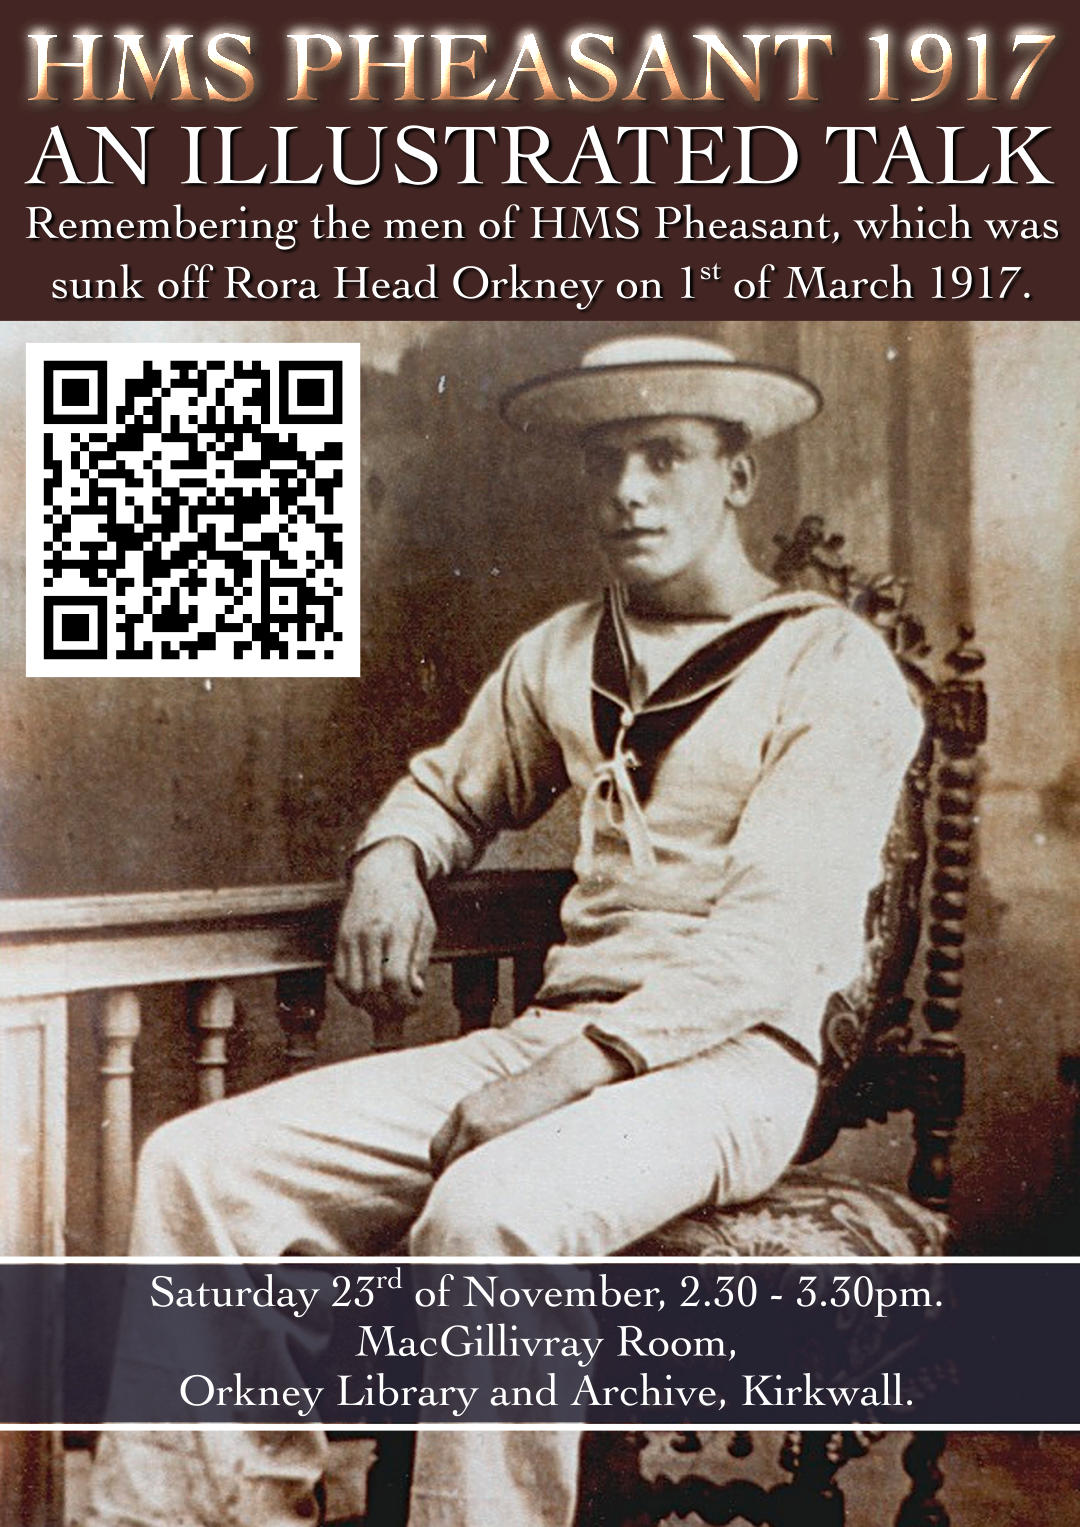 HMS Pheasant 1917 : An illustrated talk about the men of HMS Pheasant, sunk off Rora Head Orkney on 1st of March 1917. Saturday 23rd of November 2.30 - 3.30pm MacGillivray Room, Orkney Library and Archive, Kirkwall . All welcome